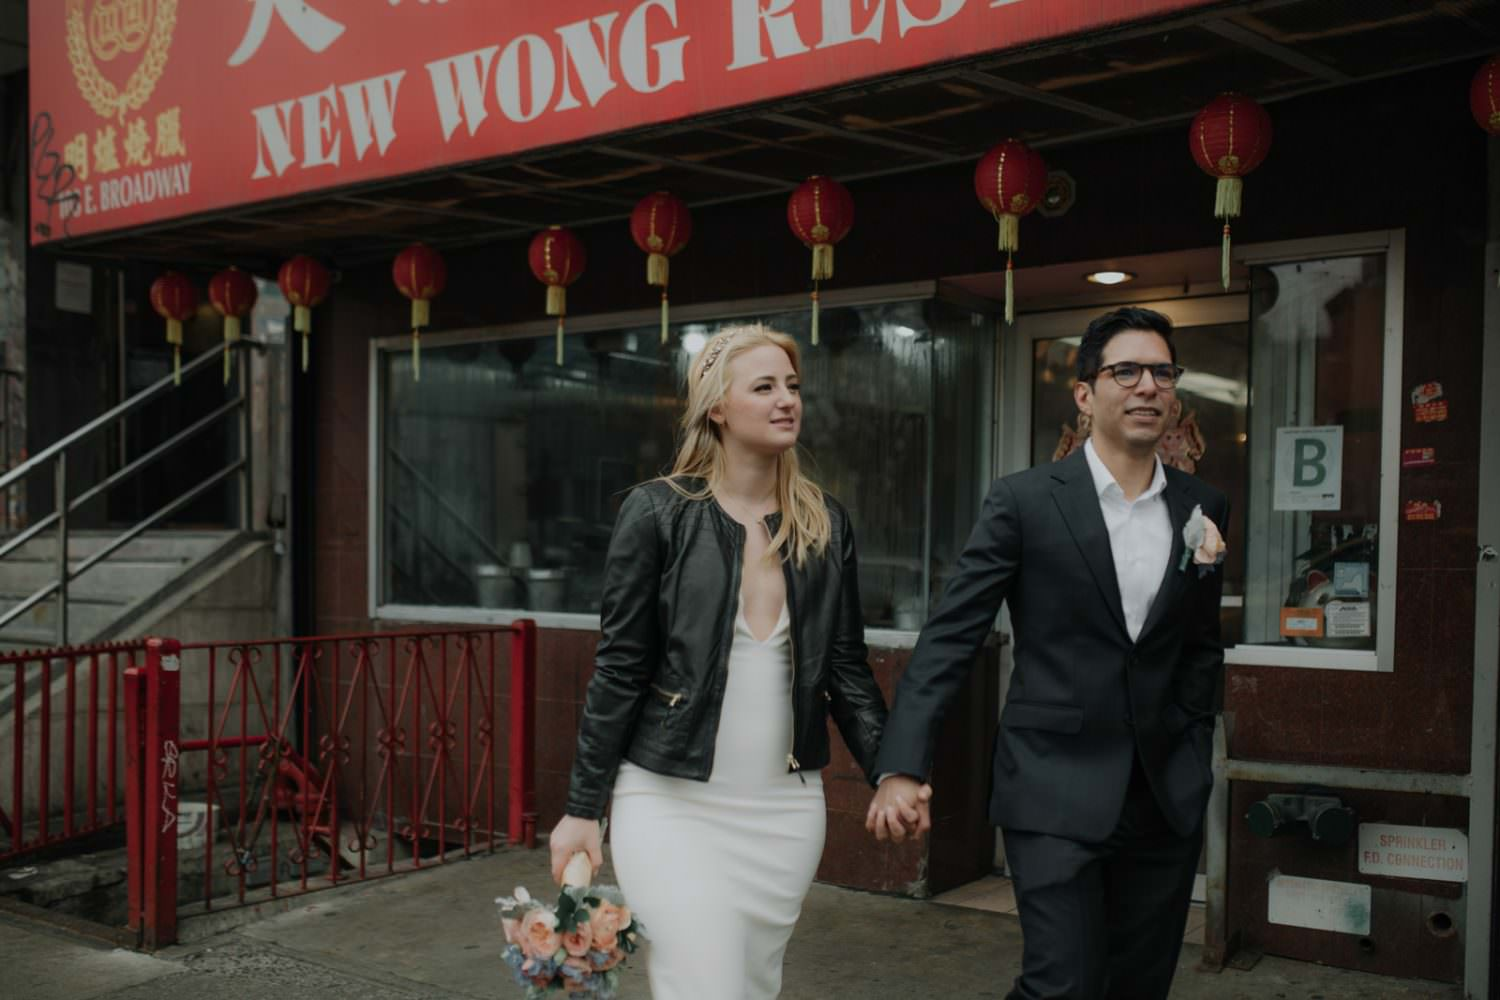 Bride and Groom walk in Chinatown on the way to city hall to get married